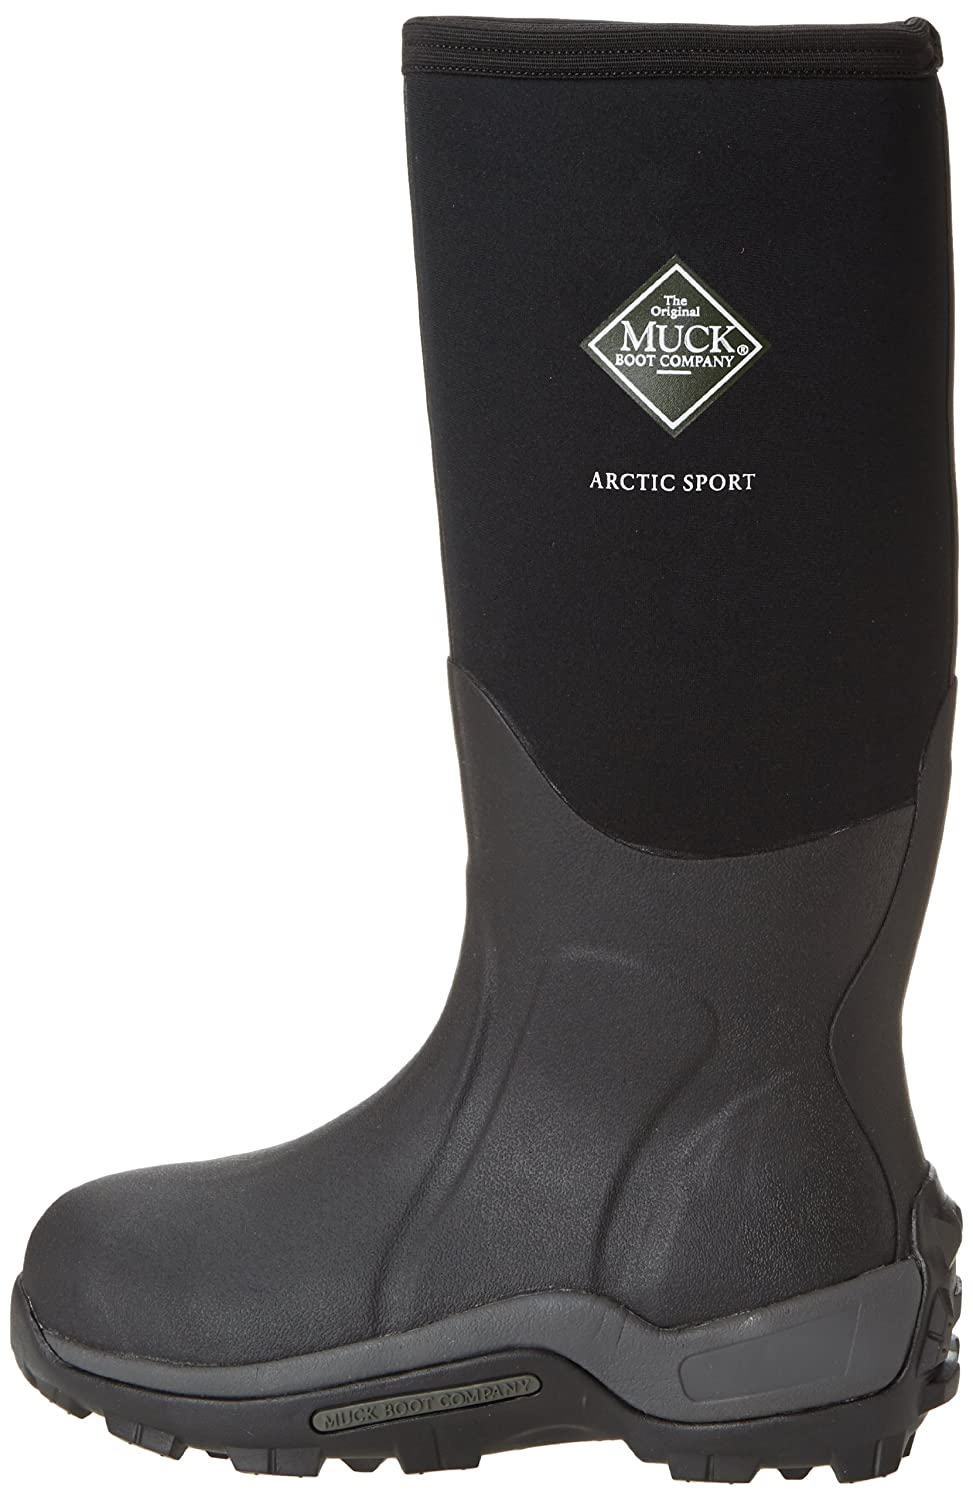 a2dfc79e2 Muck Boot Company The Arctic Sport Extreme-Conditions Sport Boot:  Amazon.ca: Shoes & Handbags